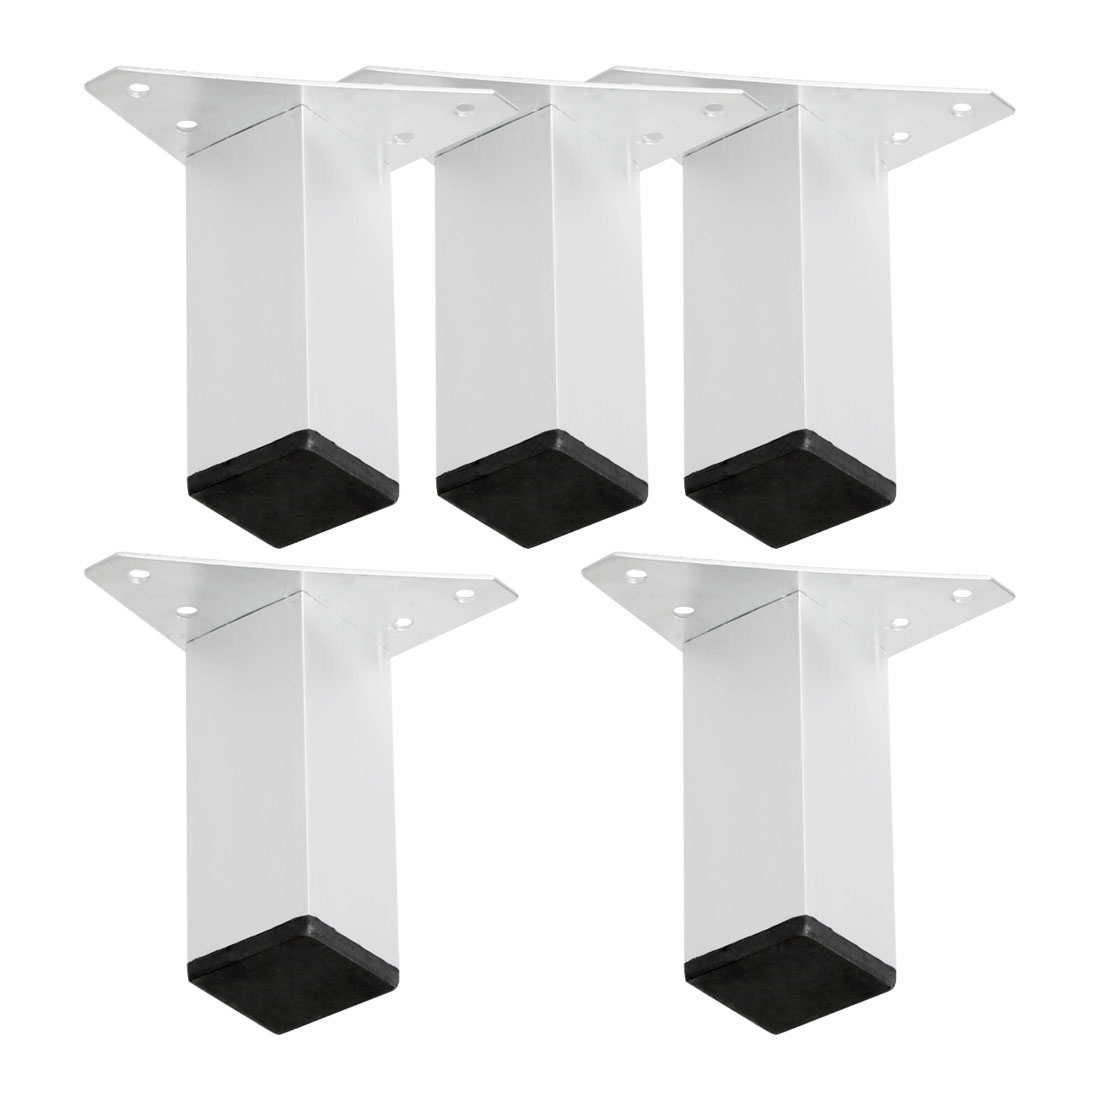 "4"" Furniture Legs Aluminium Alloy Sofa Feet Replacement Height Adjuster 5pcs"